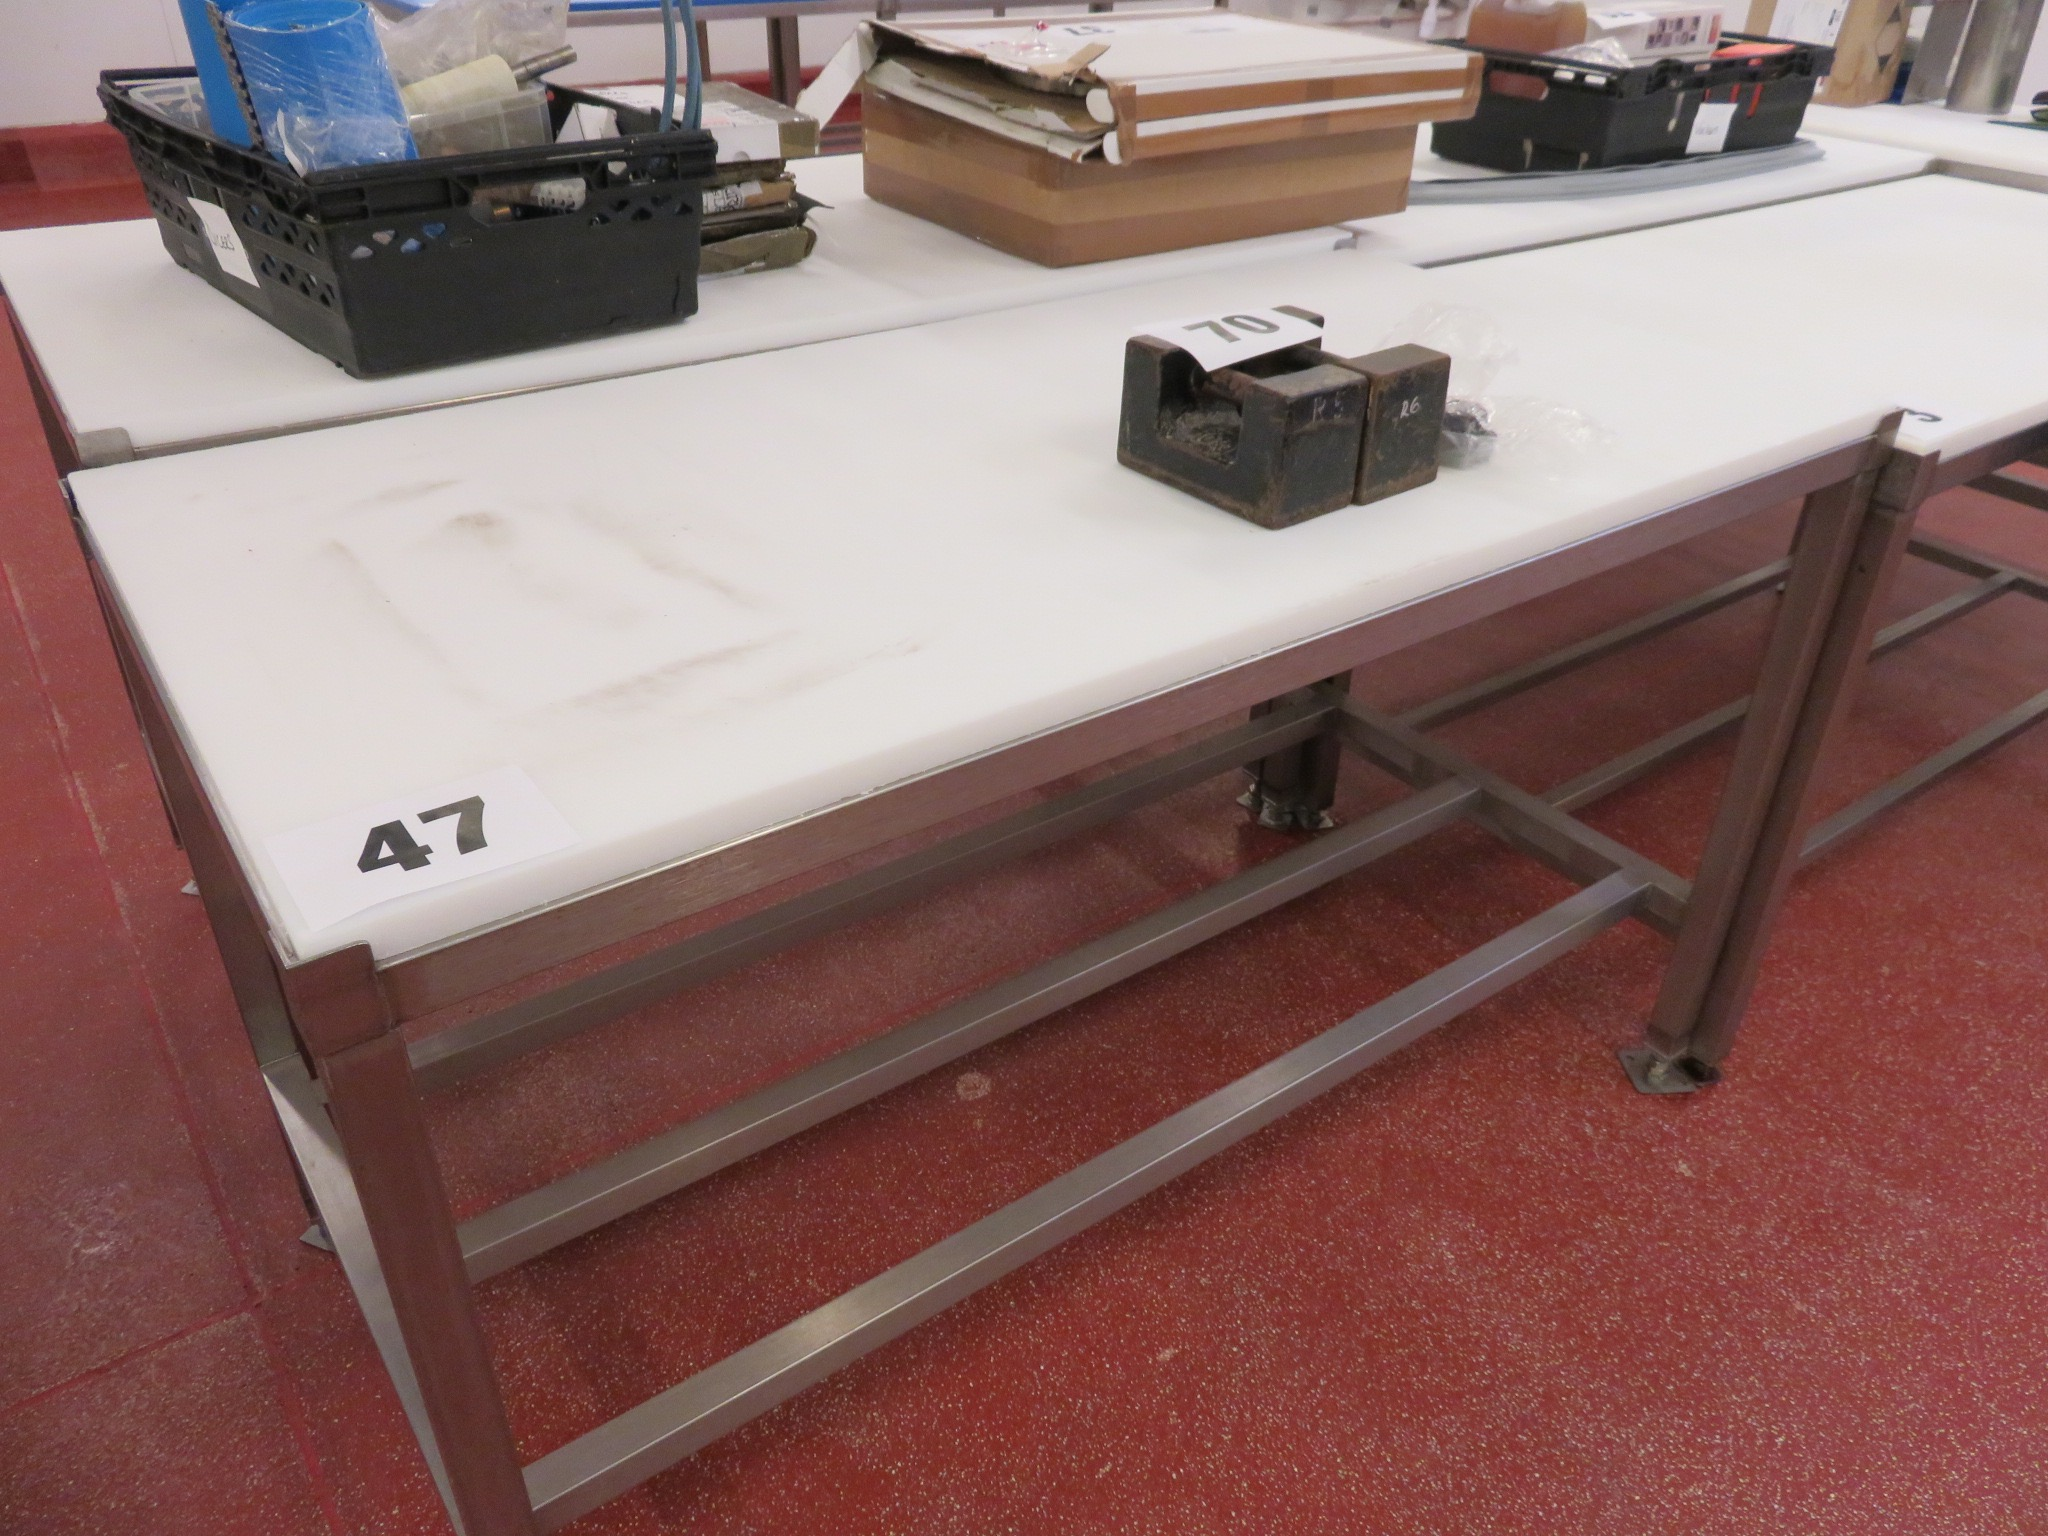 Lot 47 - s/s Cutting Table. 1.5 metres long x 750mm wide. Lift Out £15